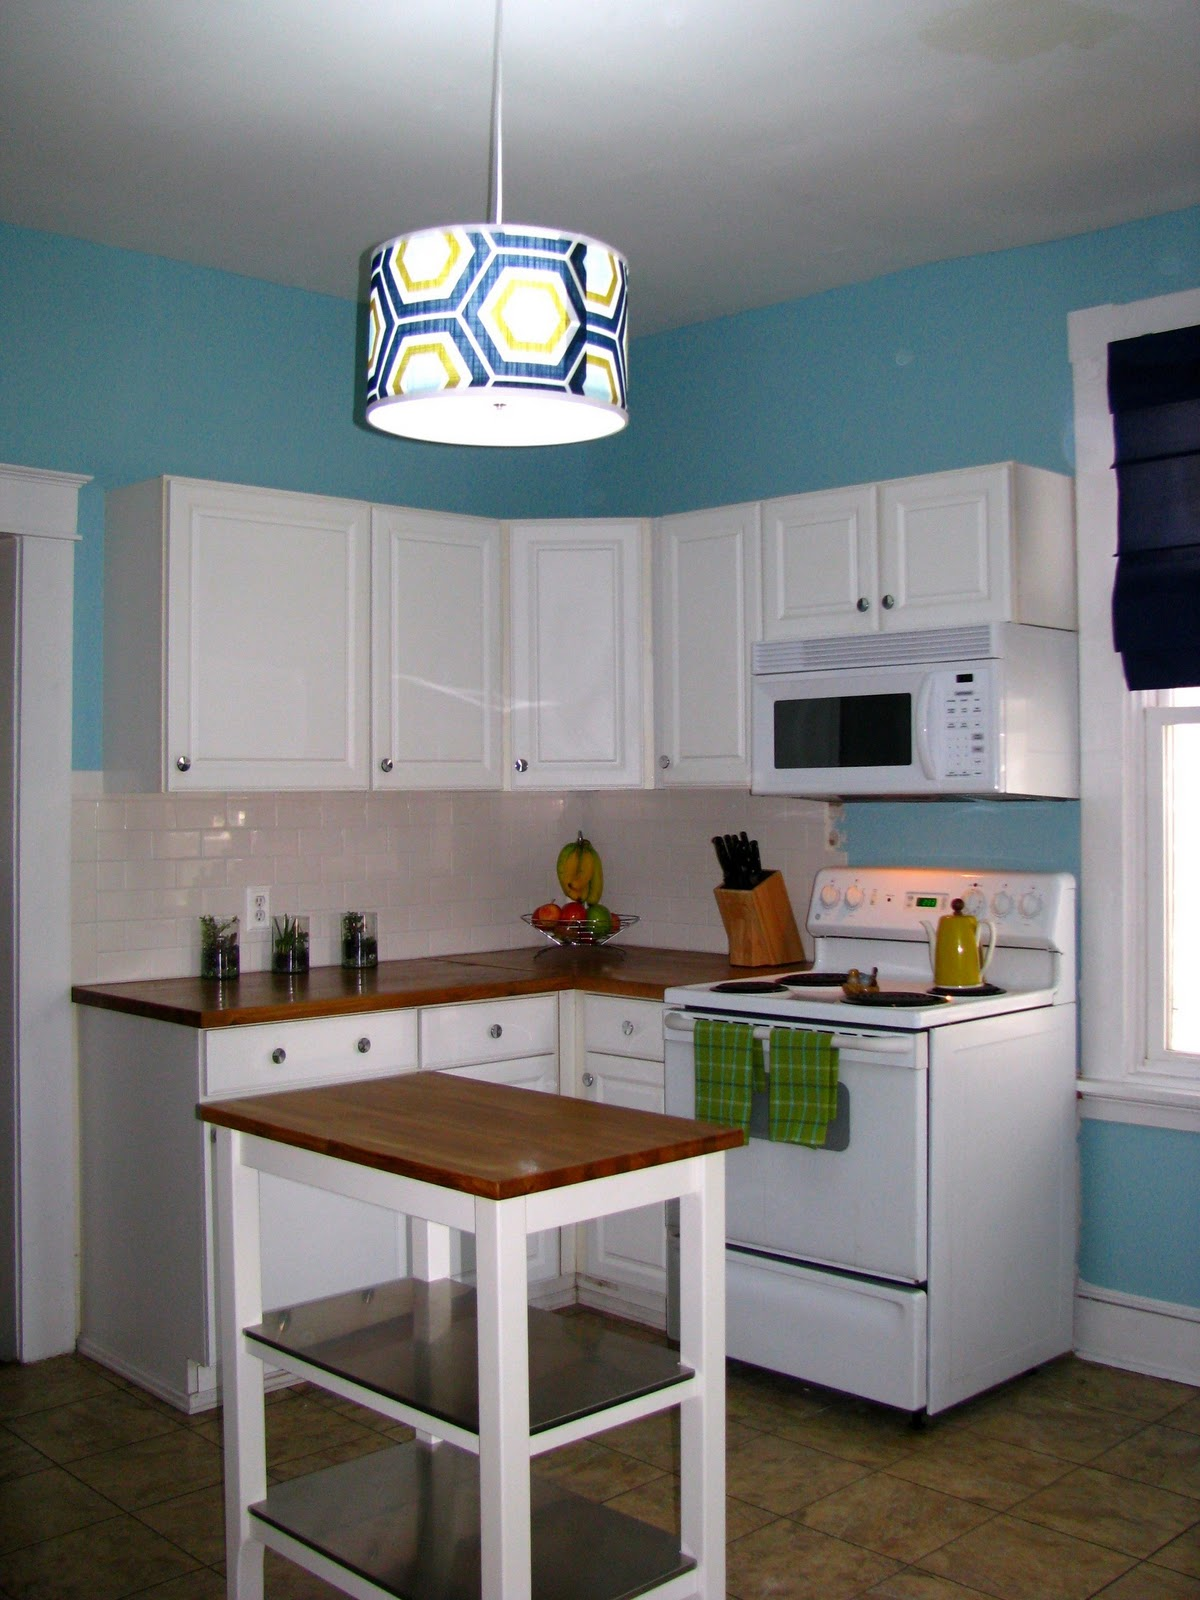 kitchen pendant into ideas cheap your for remodel diy budget friendly convert remodeling the home lighting recessed a on